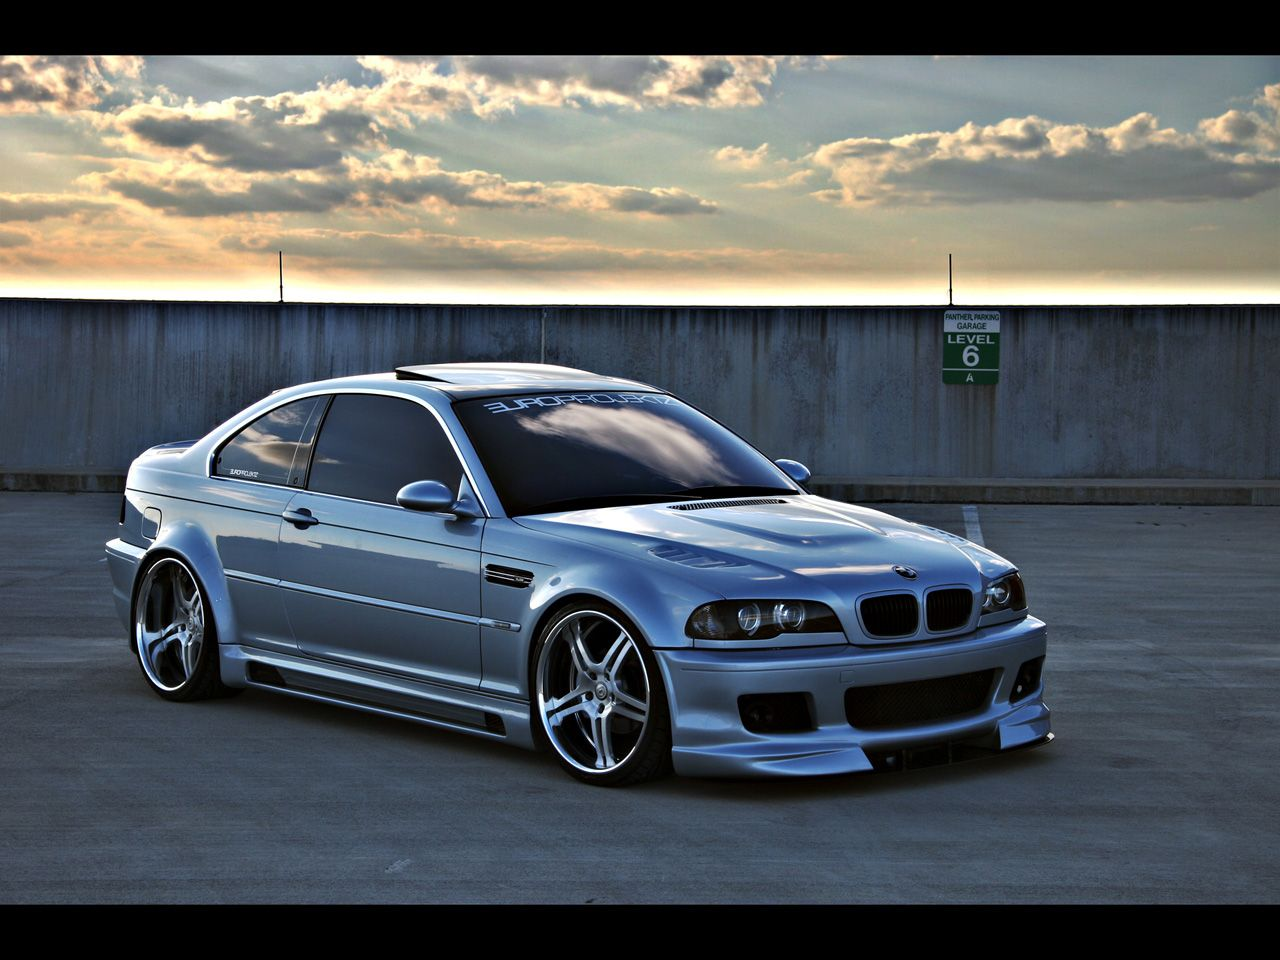 Bmw 325ci our car me and my man jose andrade